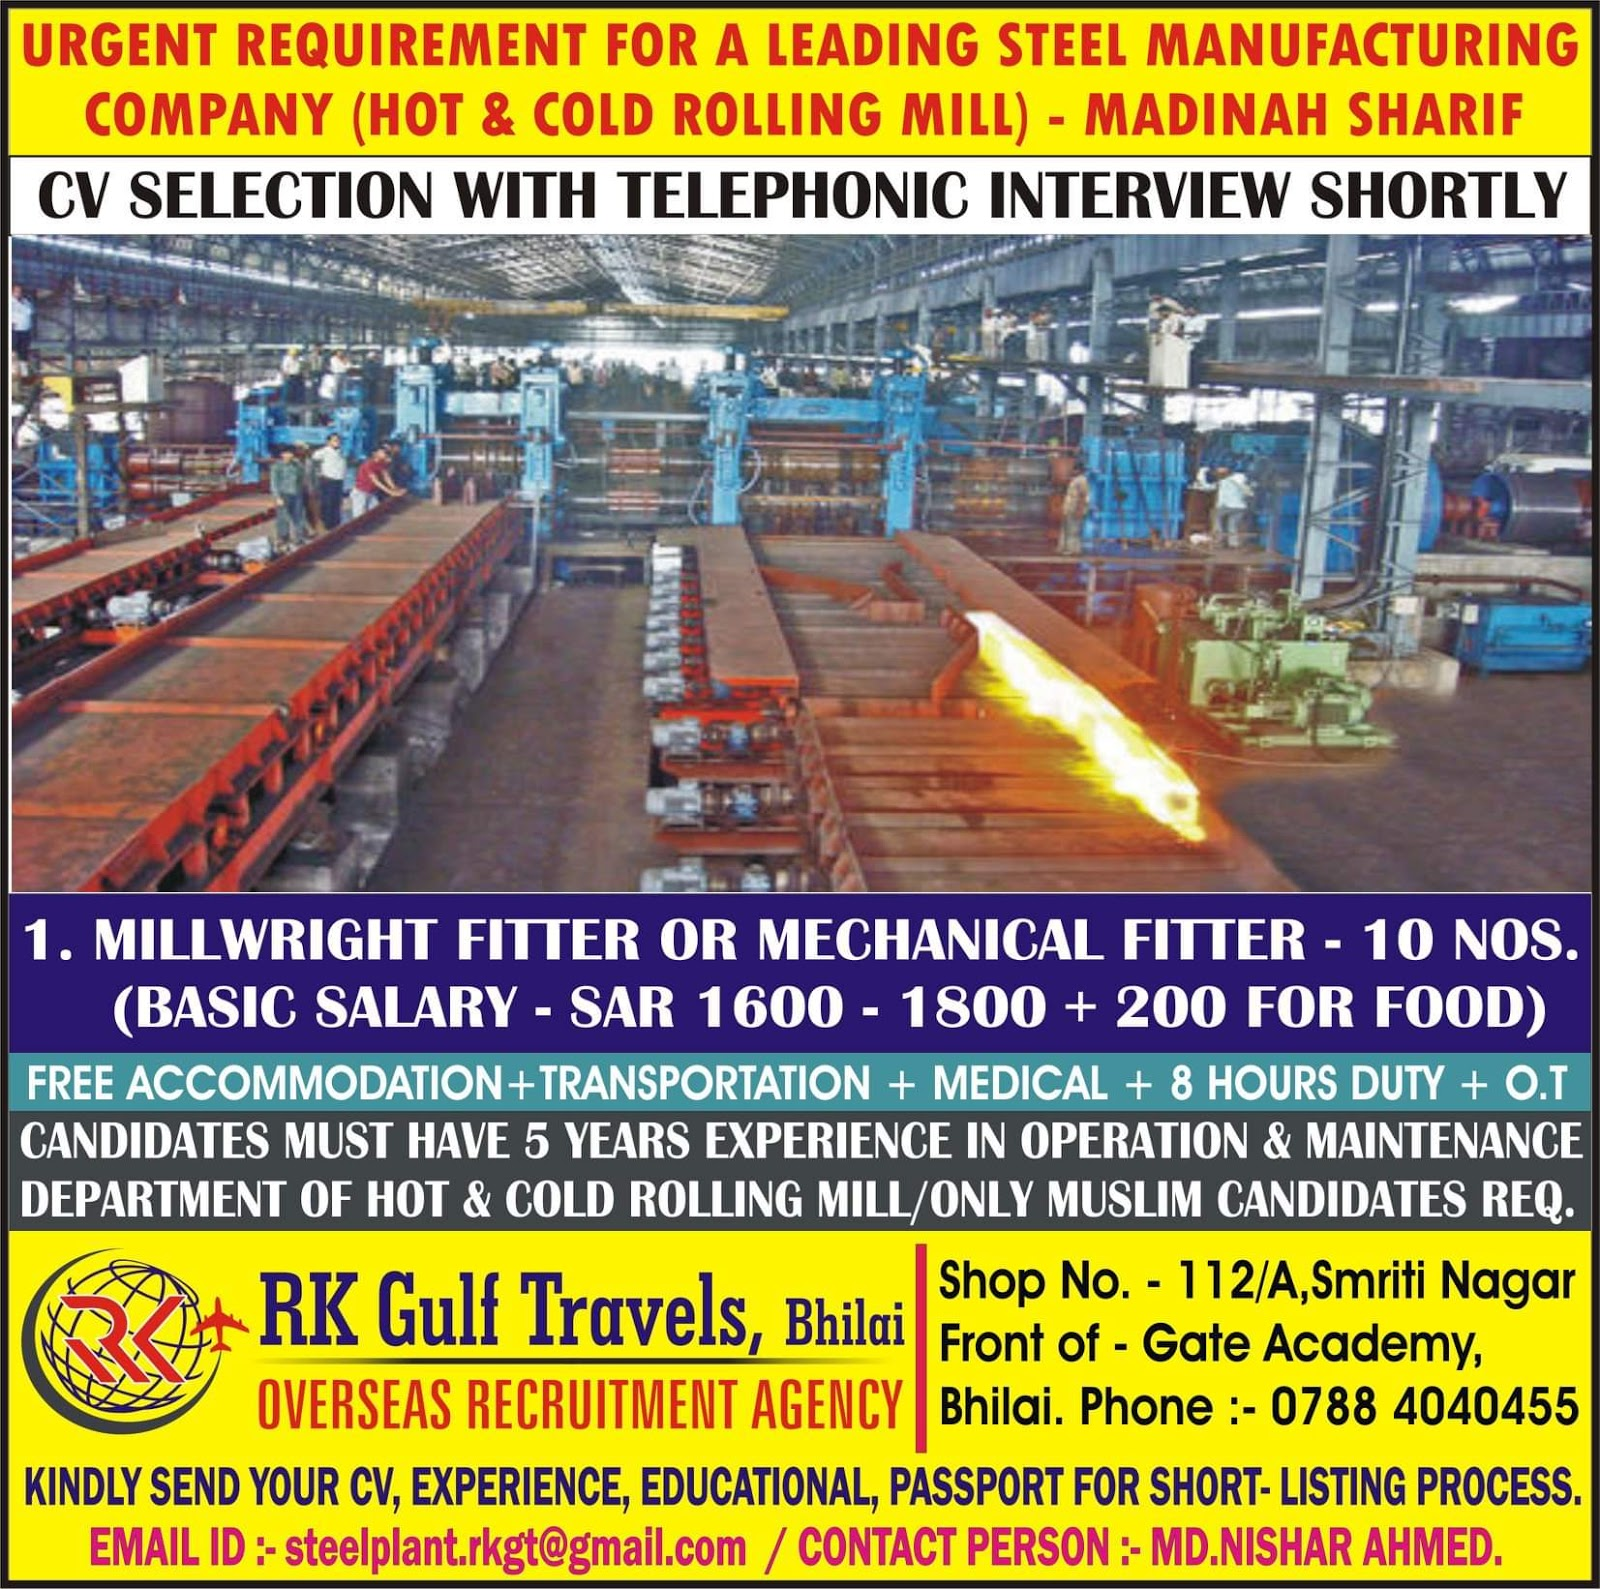 Urgent Requirement for leading Steel Manufacturing Co